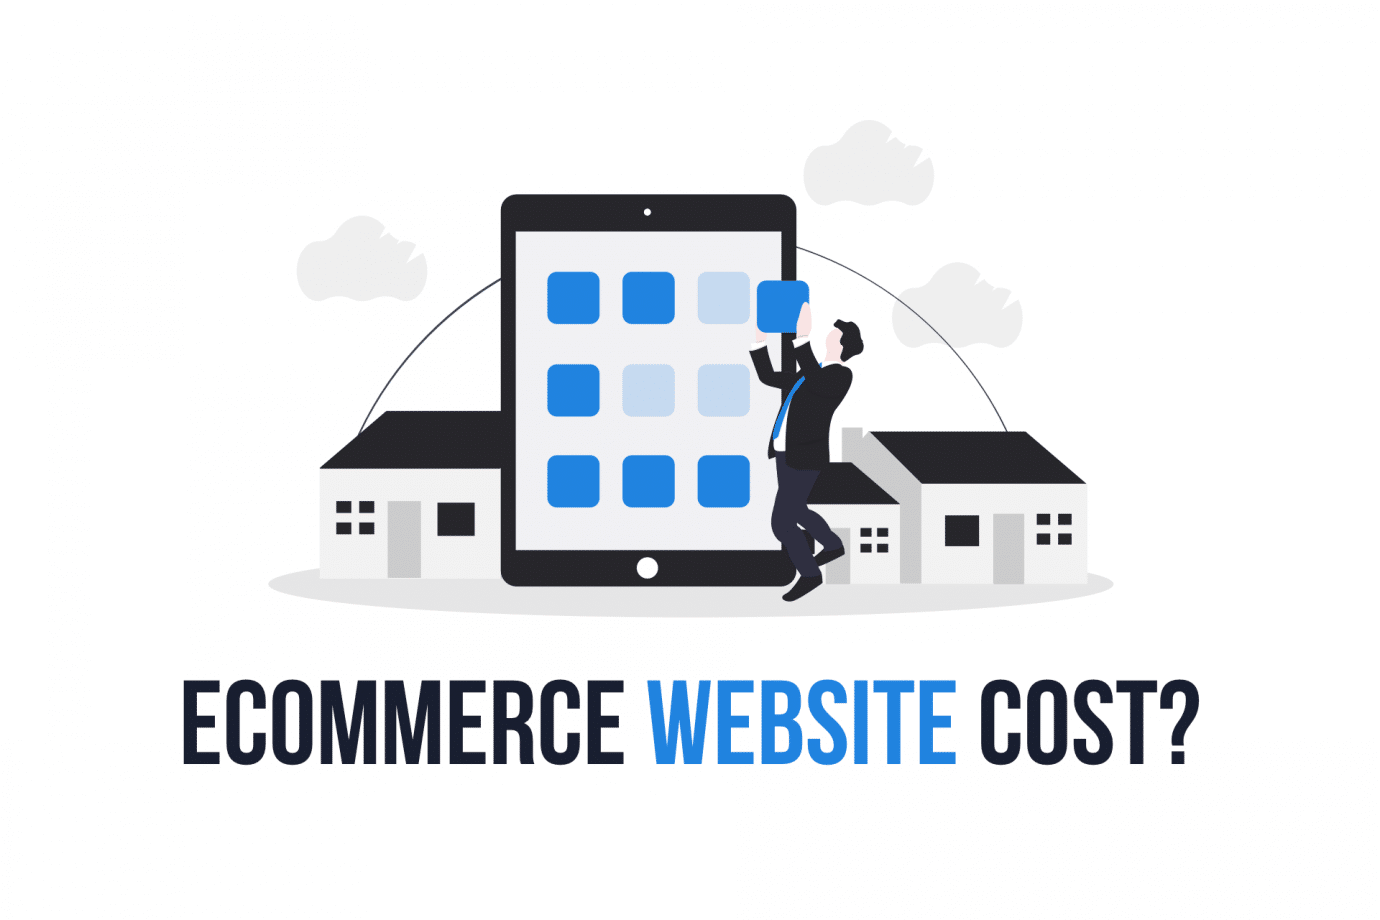 How Much Does an Ecommerce Website Cost?